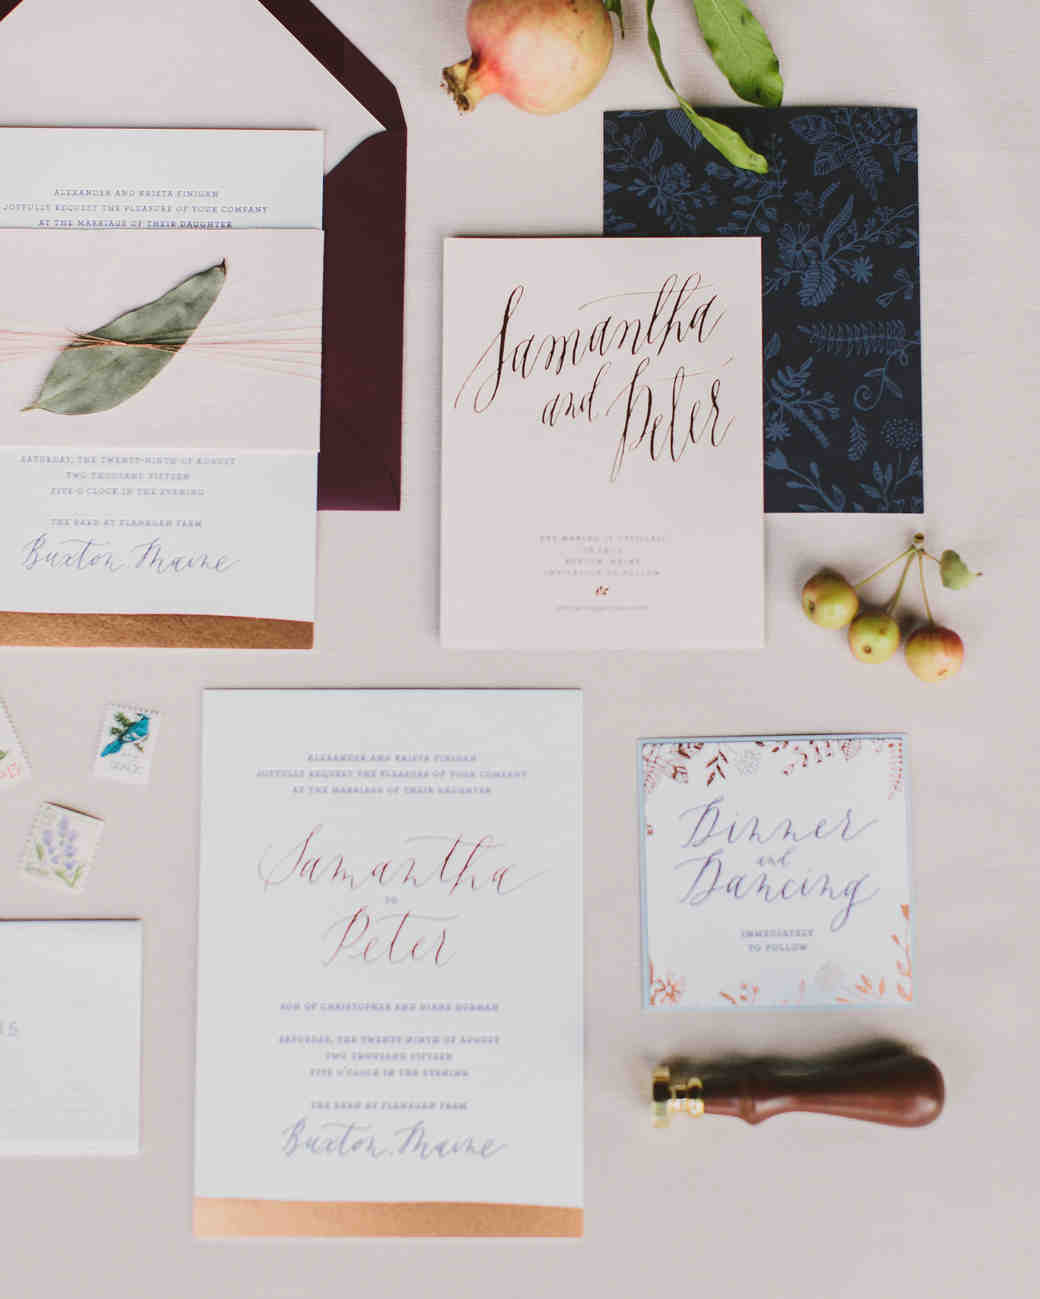 Get creative and one-of-a-kind ideas for your wedding stationery. These original paper goods from real celebrations are sure to inspire your own invites.